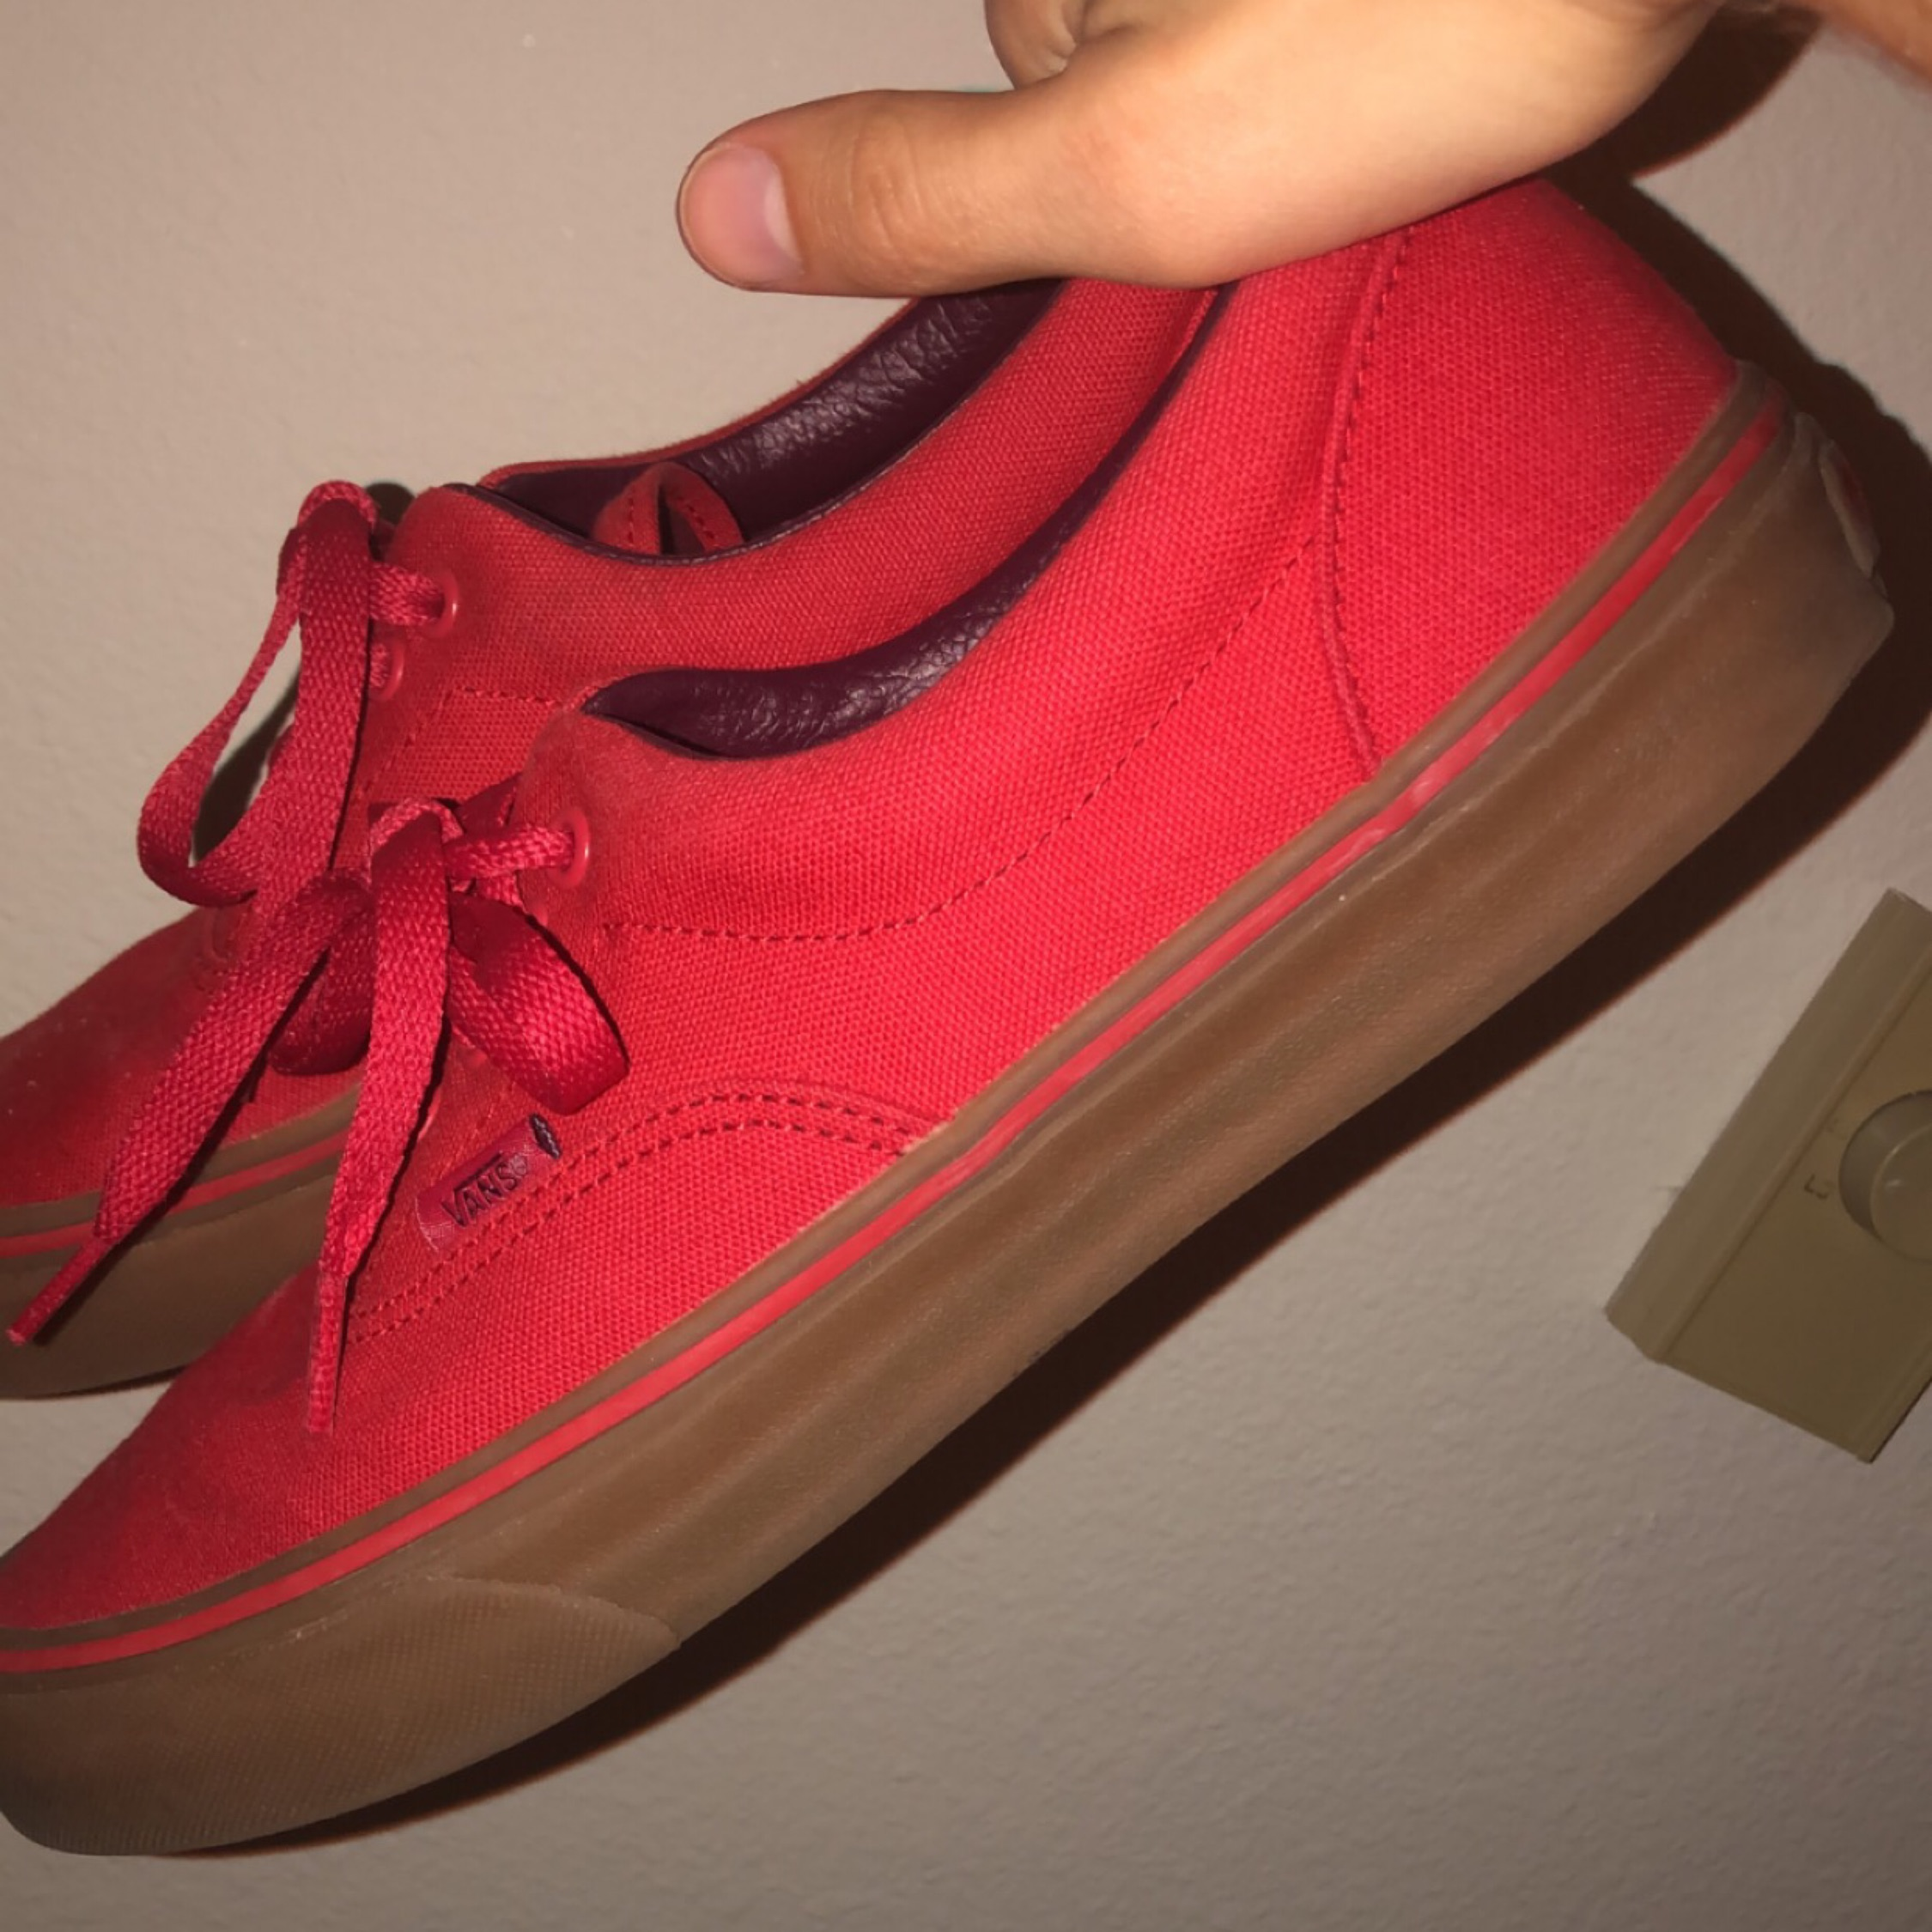 Vans Authentic Red With Gum Sole